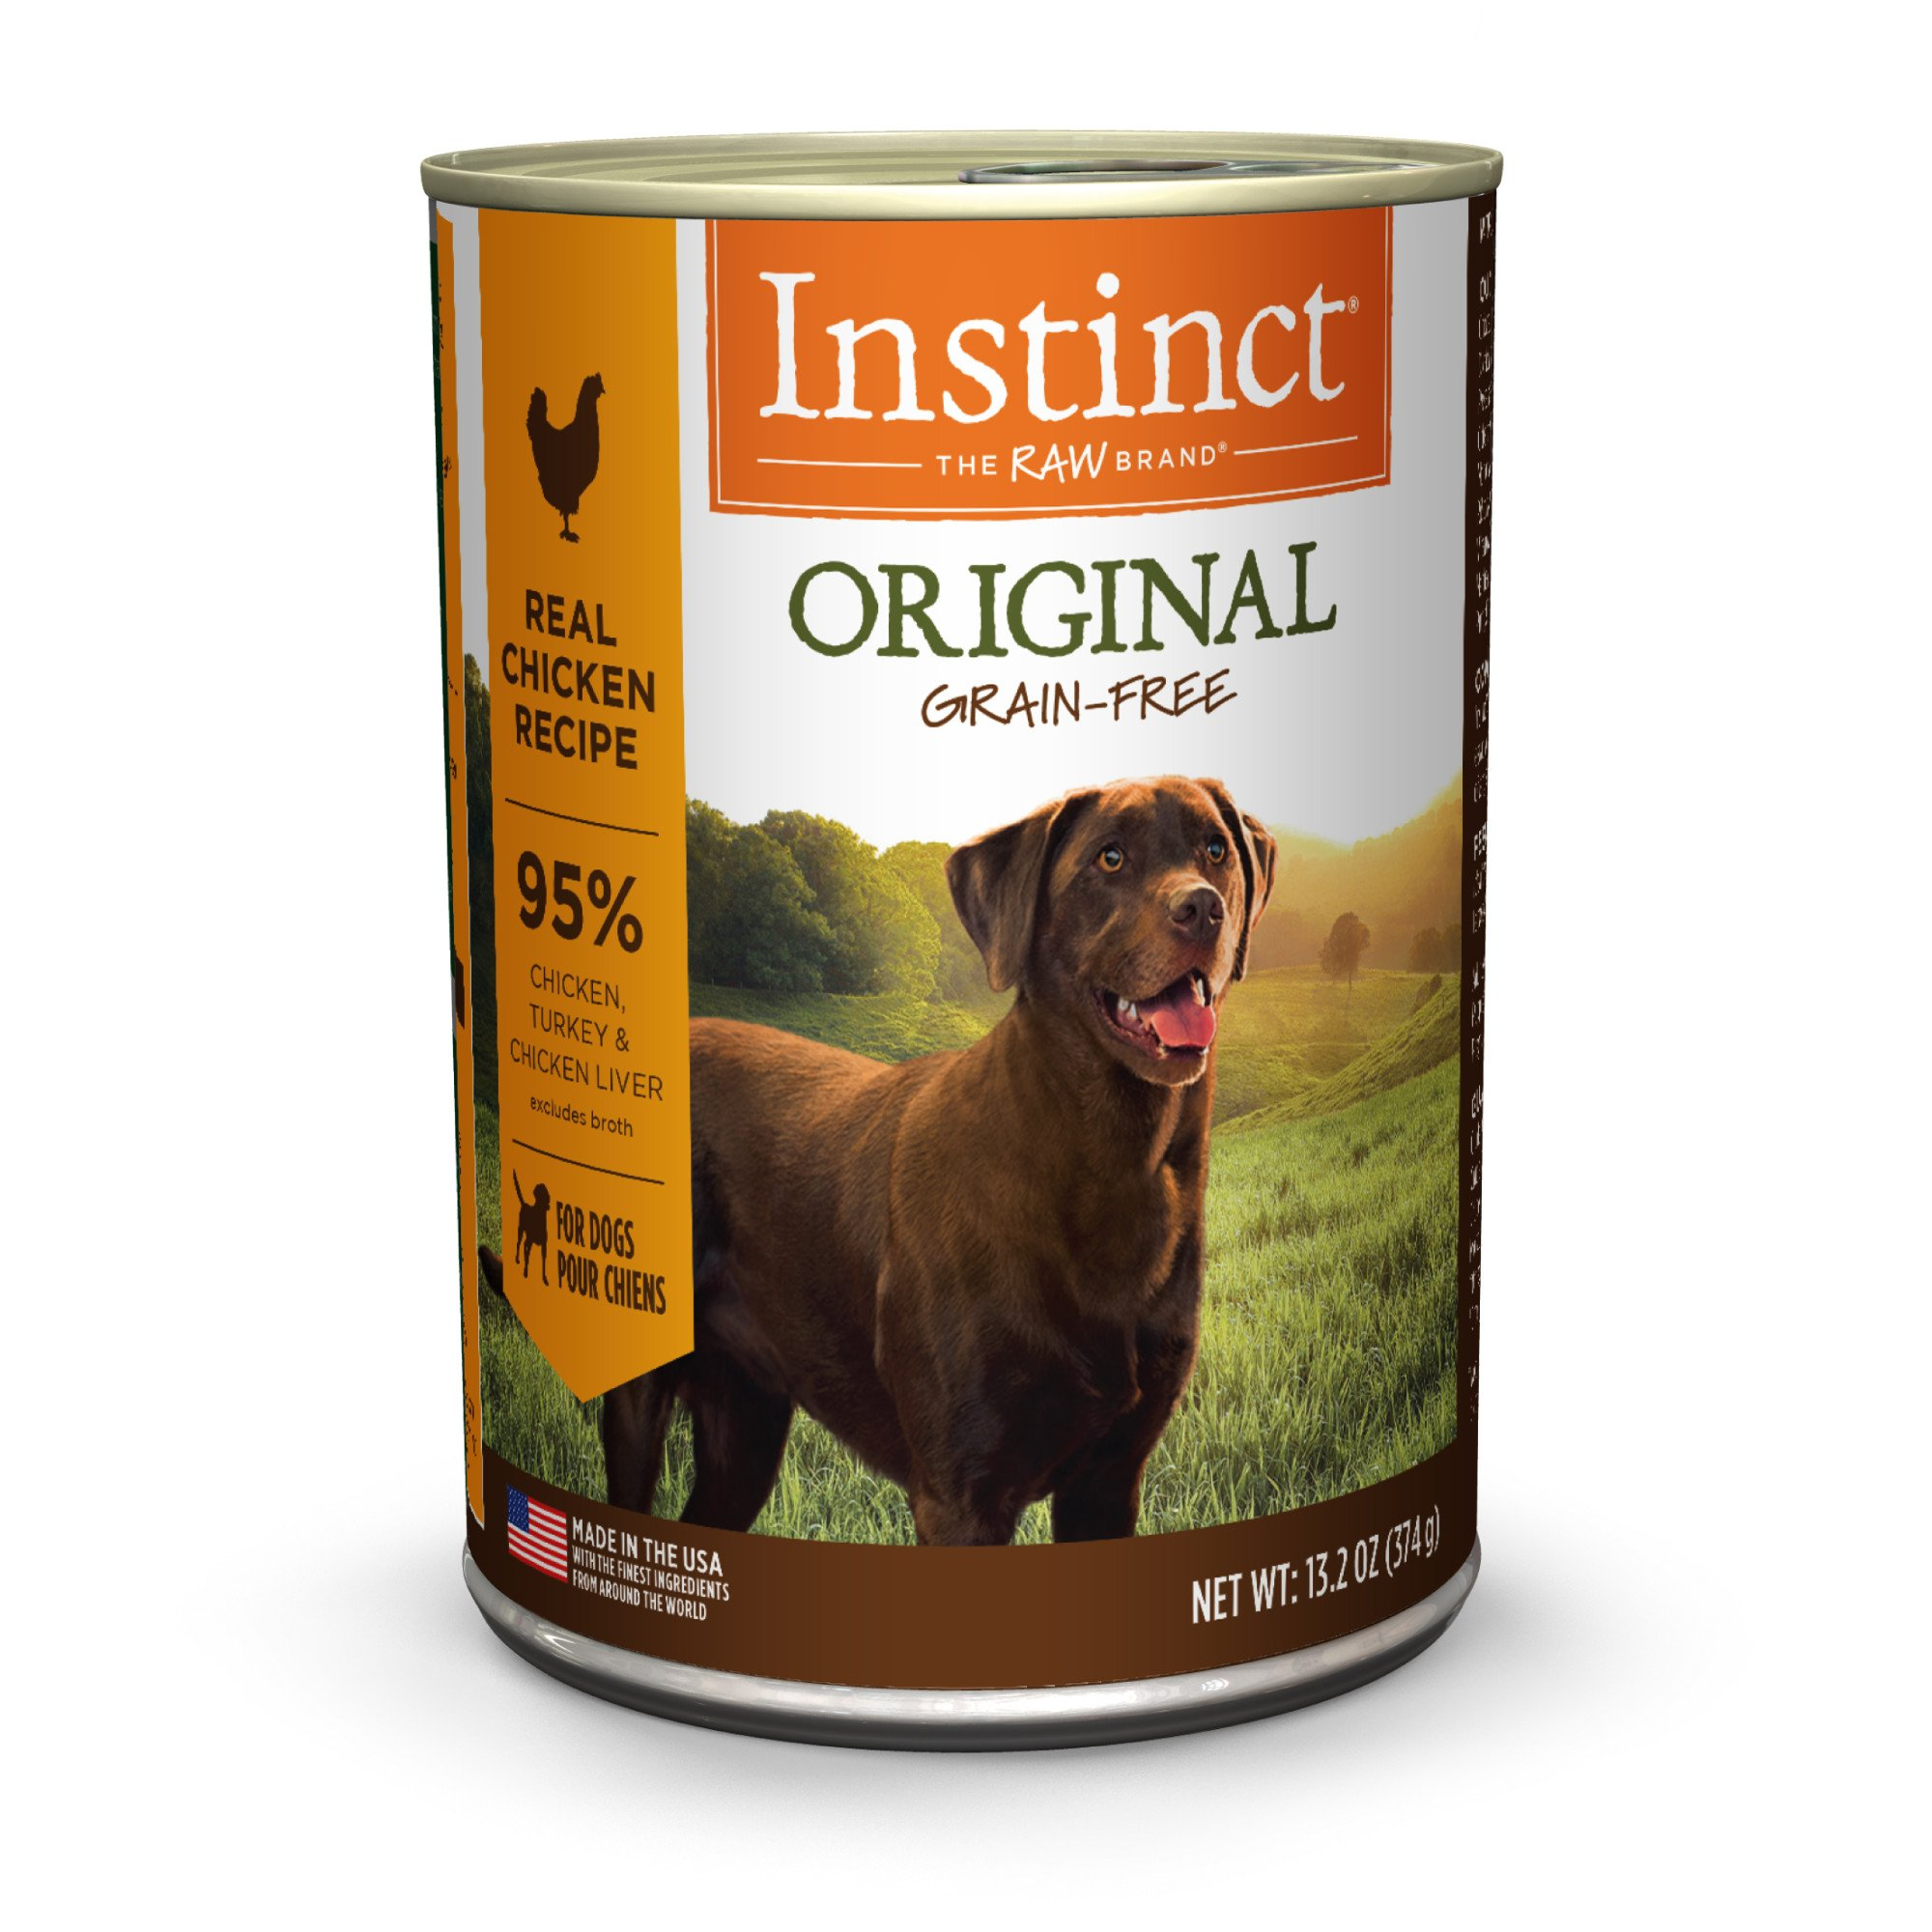 By Nature Dog Food Canned